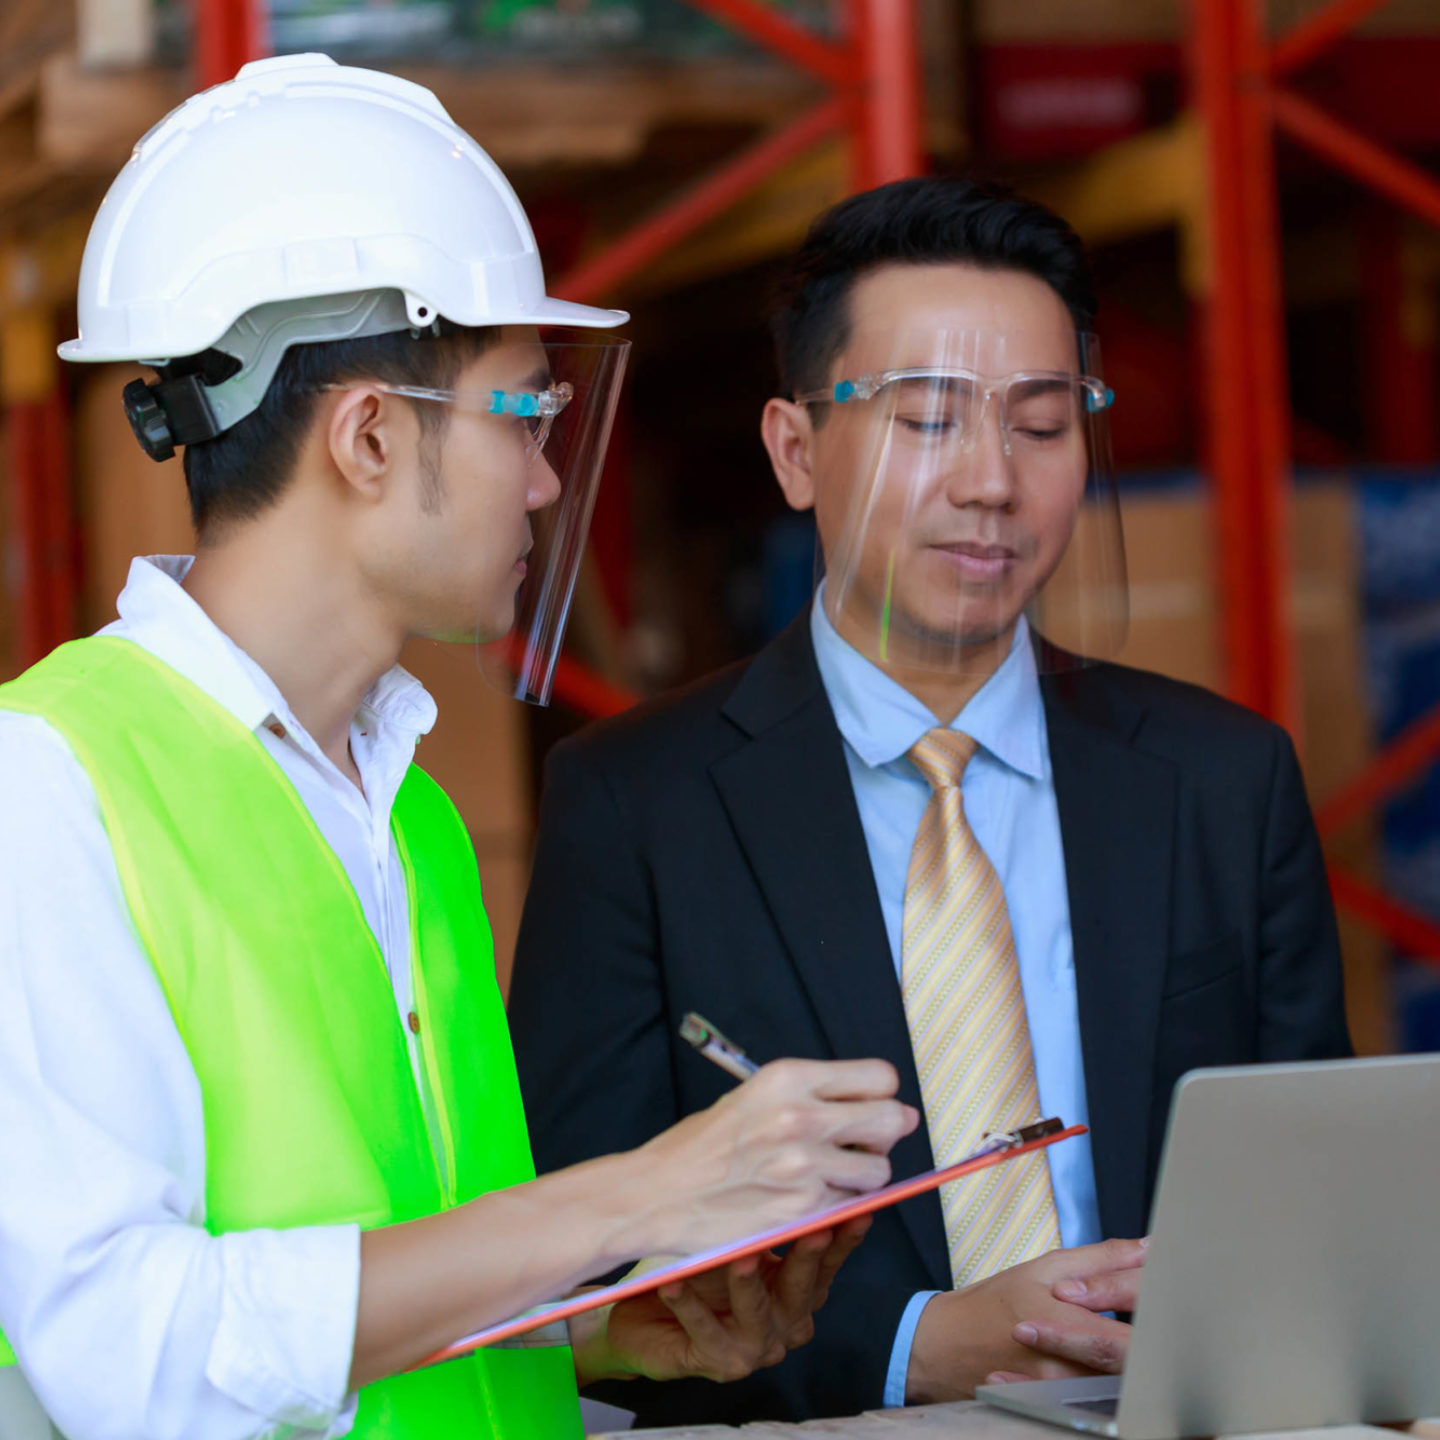 Business man and woman talking to construction worker while wearing face shields